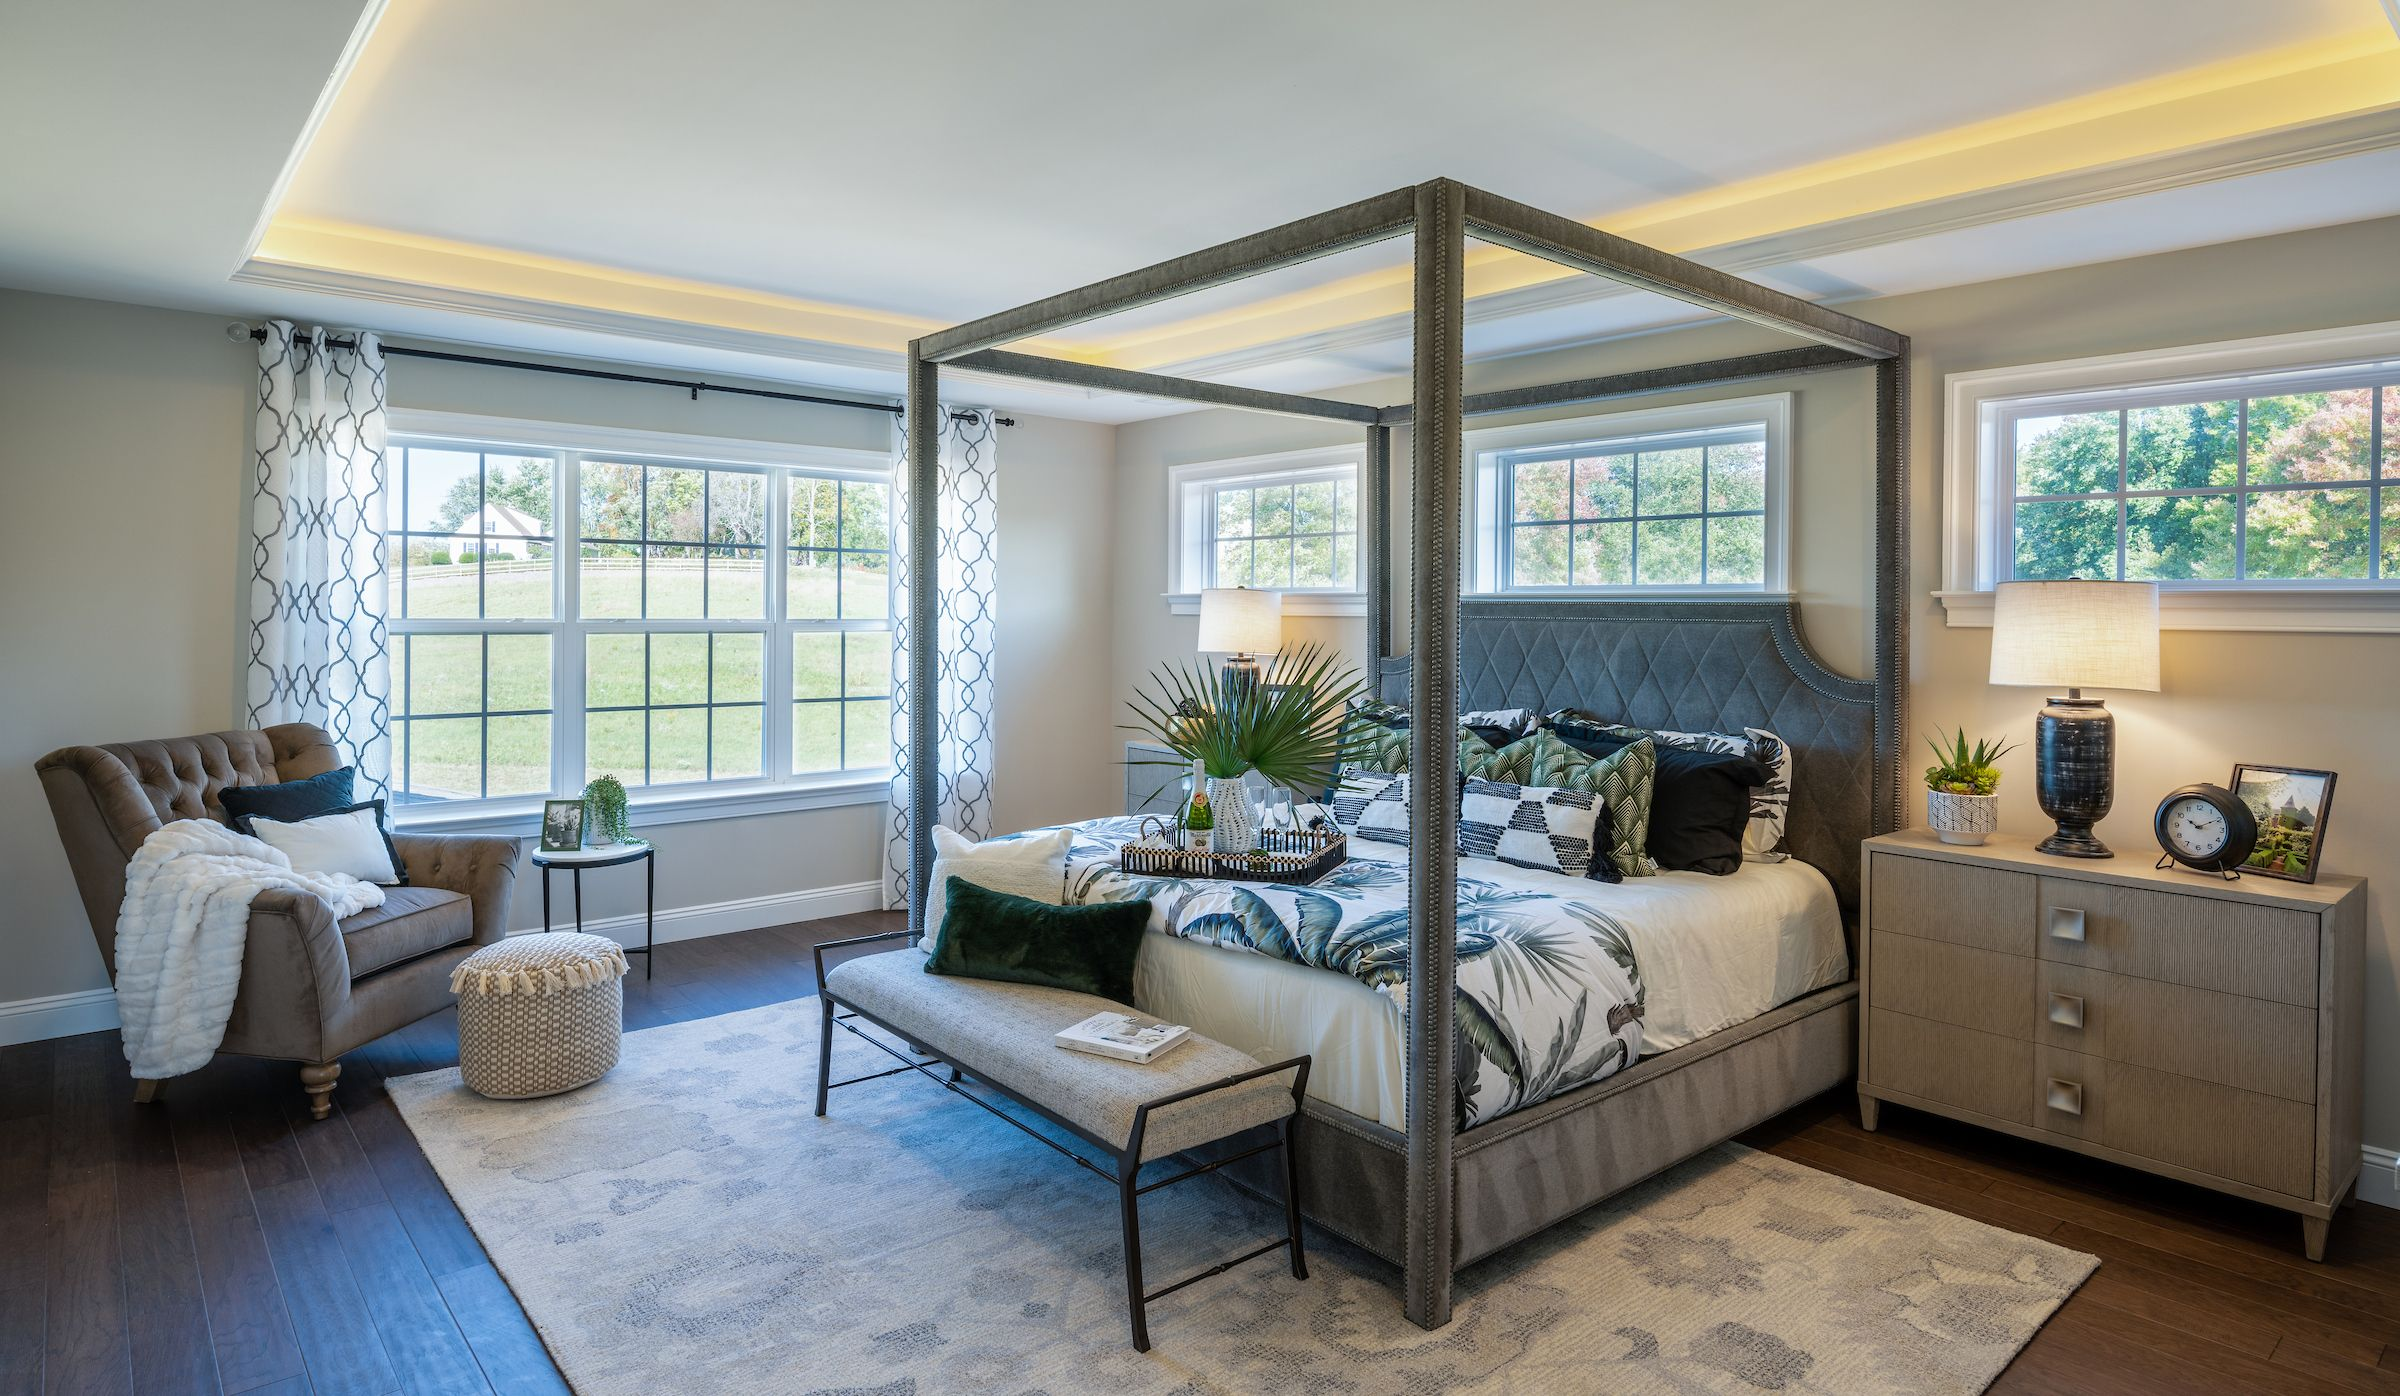 Bedroom featured in the Hawthorne Manor By Keystone Custom Homes in Baltimore, MD